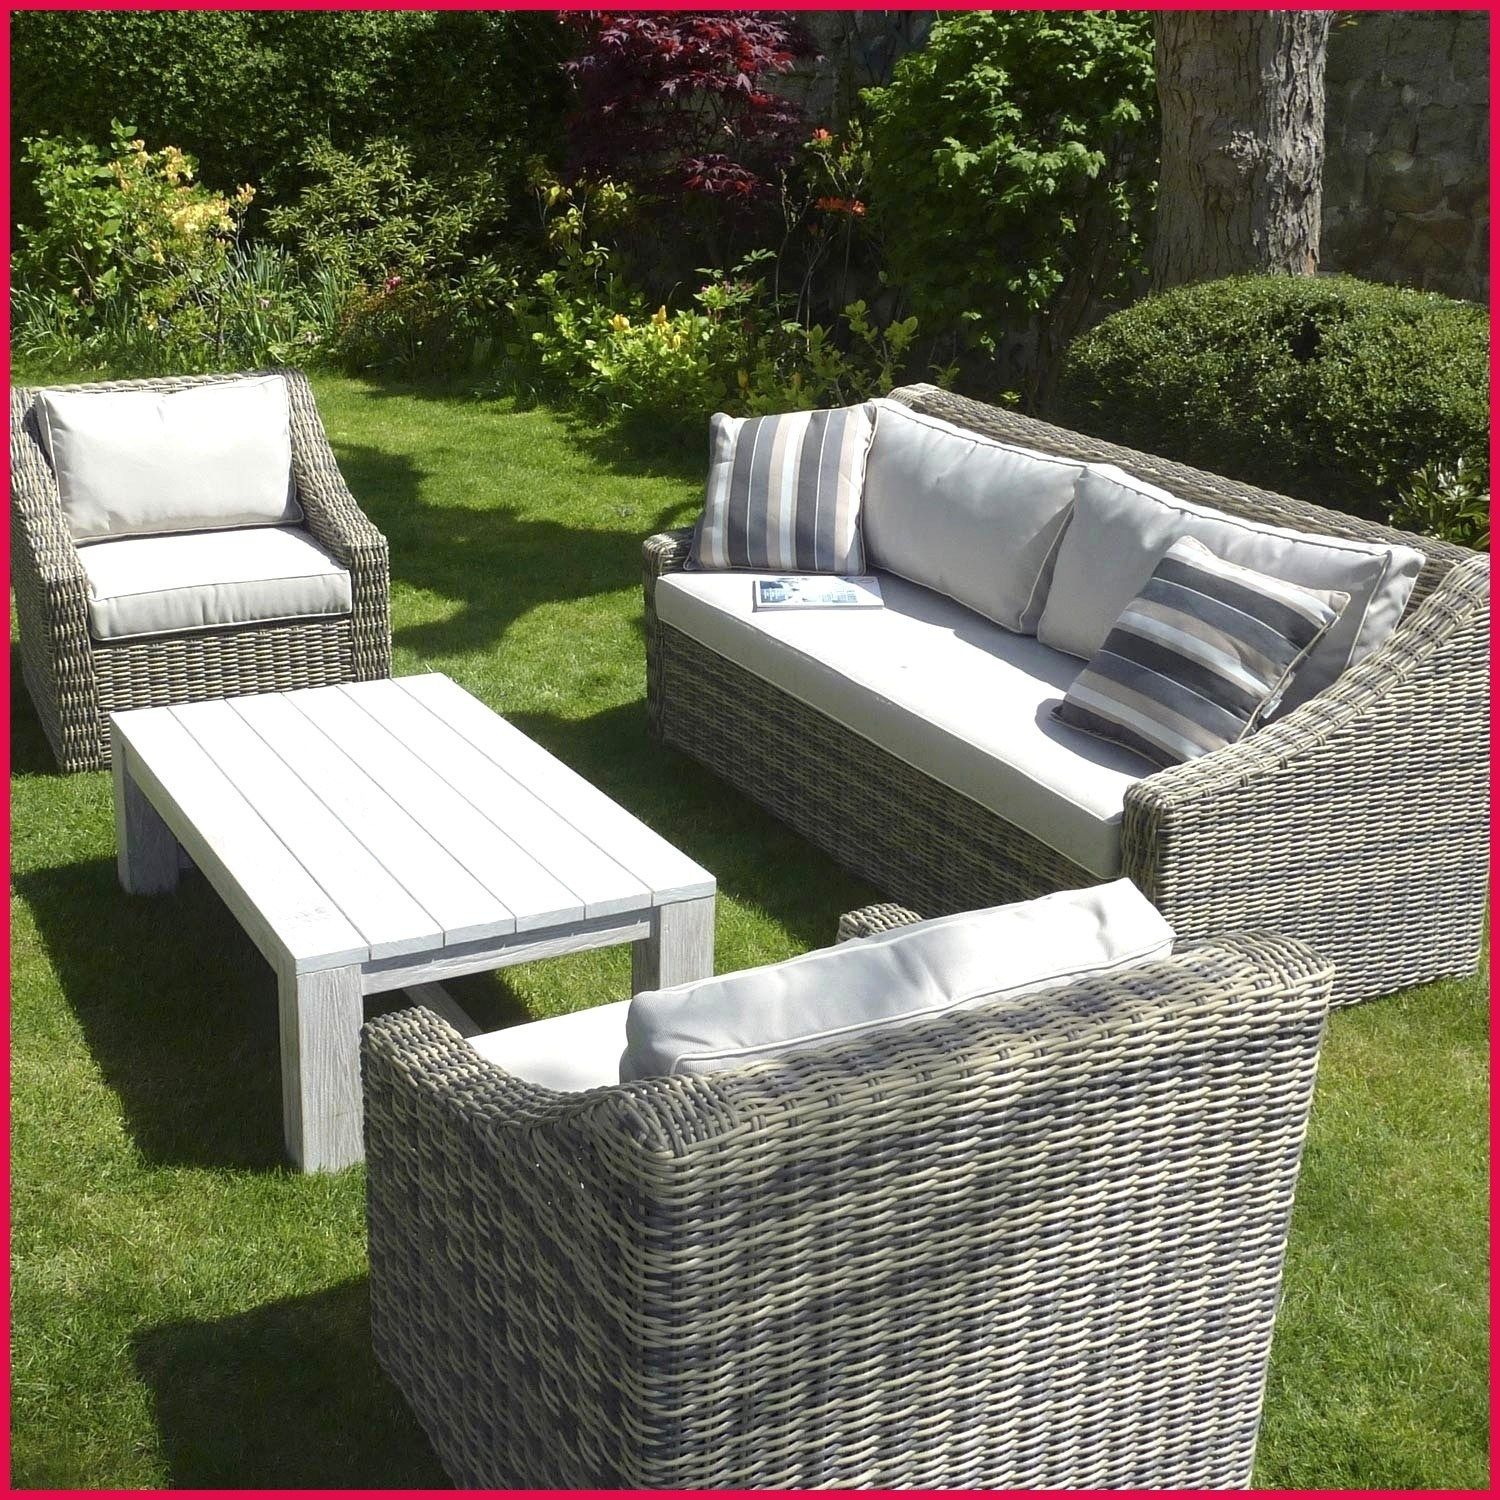 Inspirational Salon De Jardin Corona Cappuccino Outdoor Furniture Sets Bouroullec Design Amazing Apartments